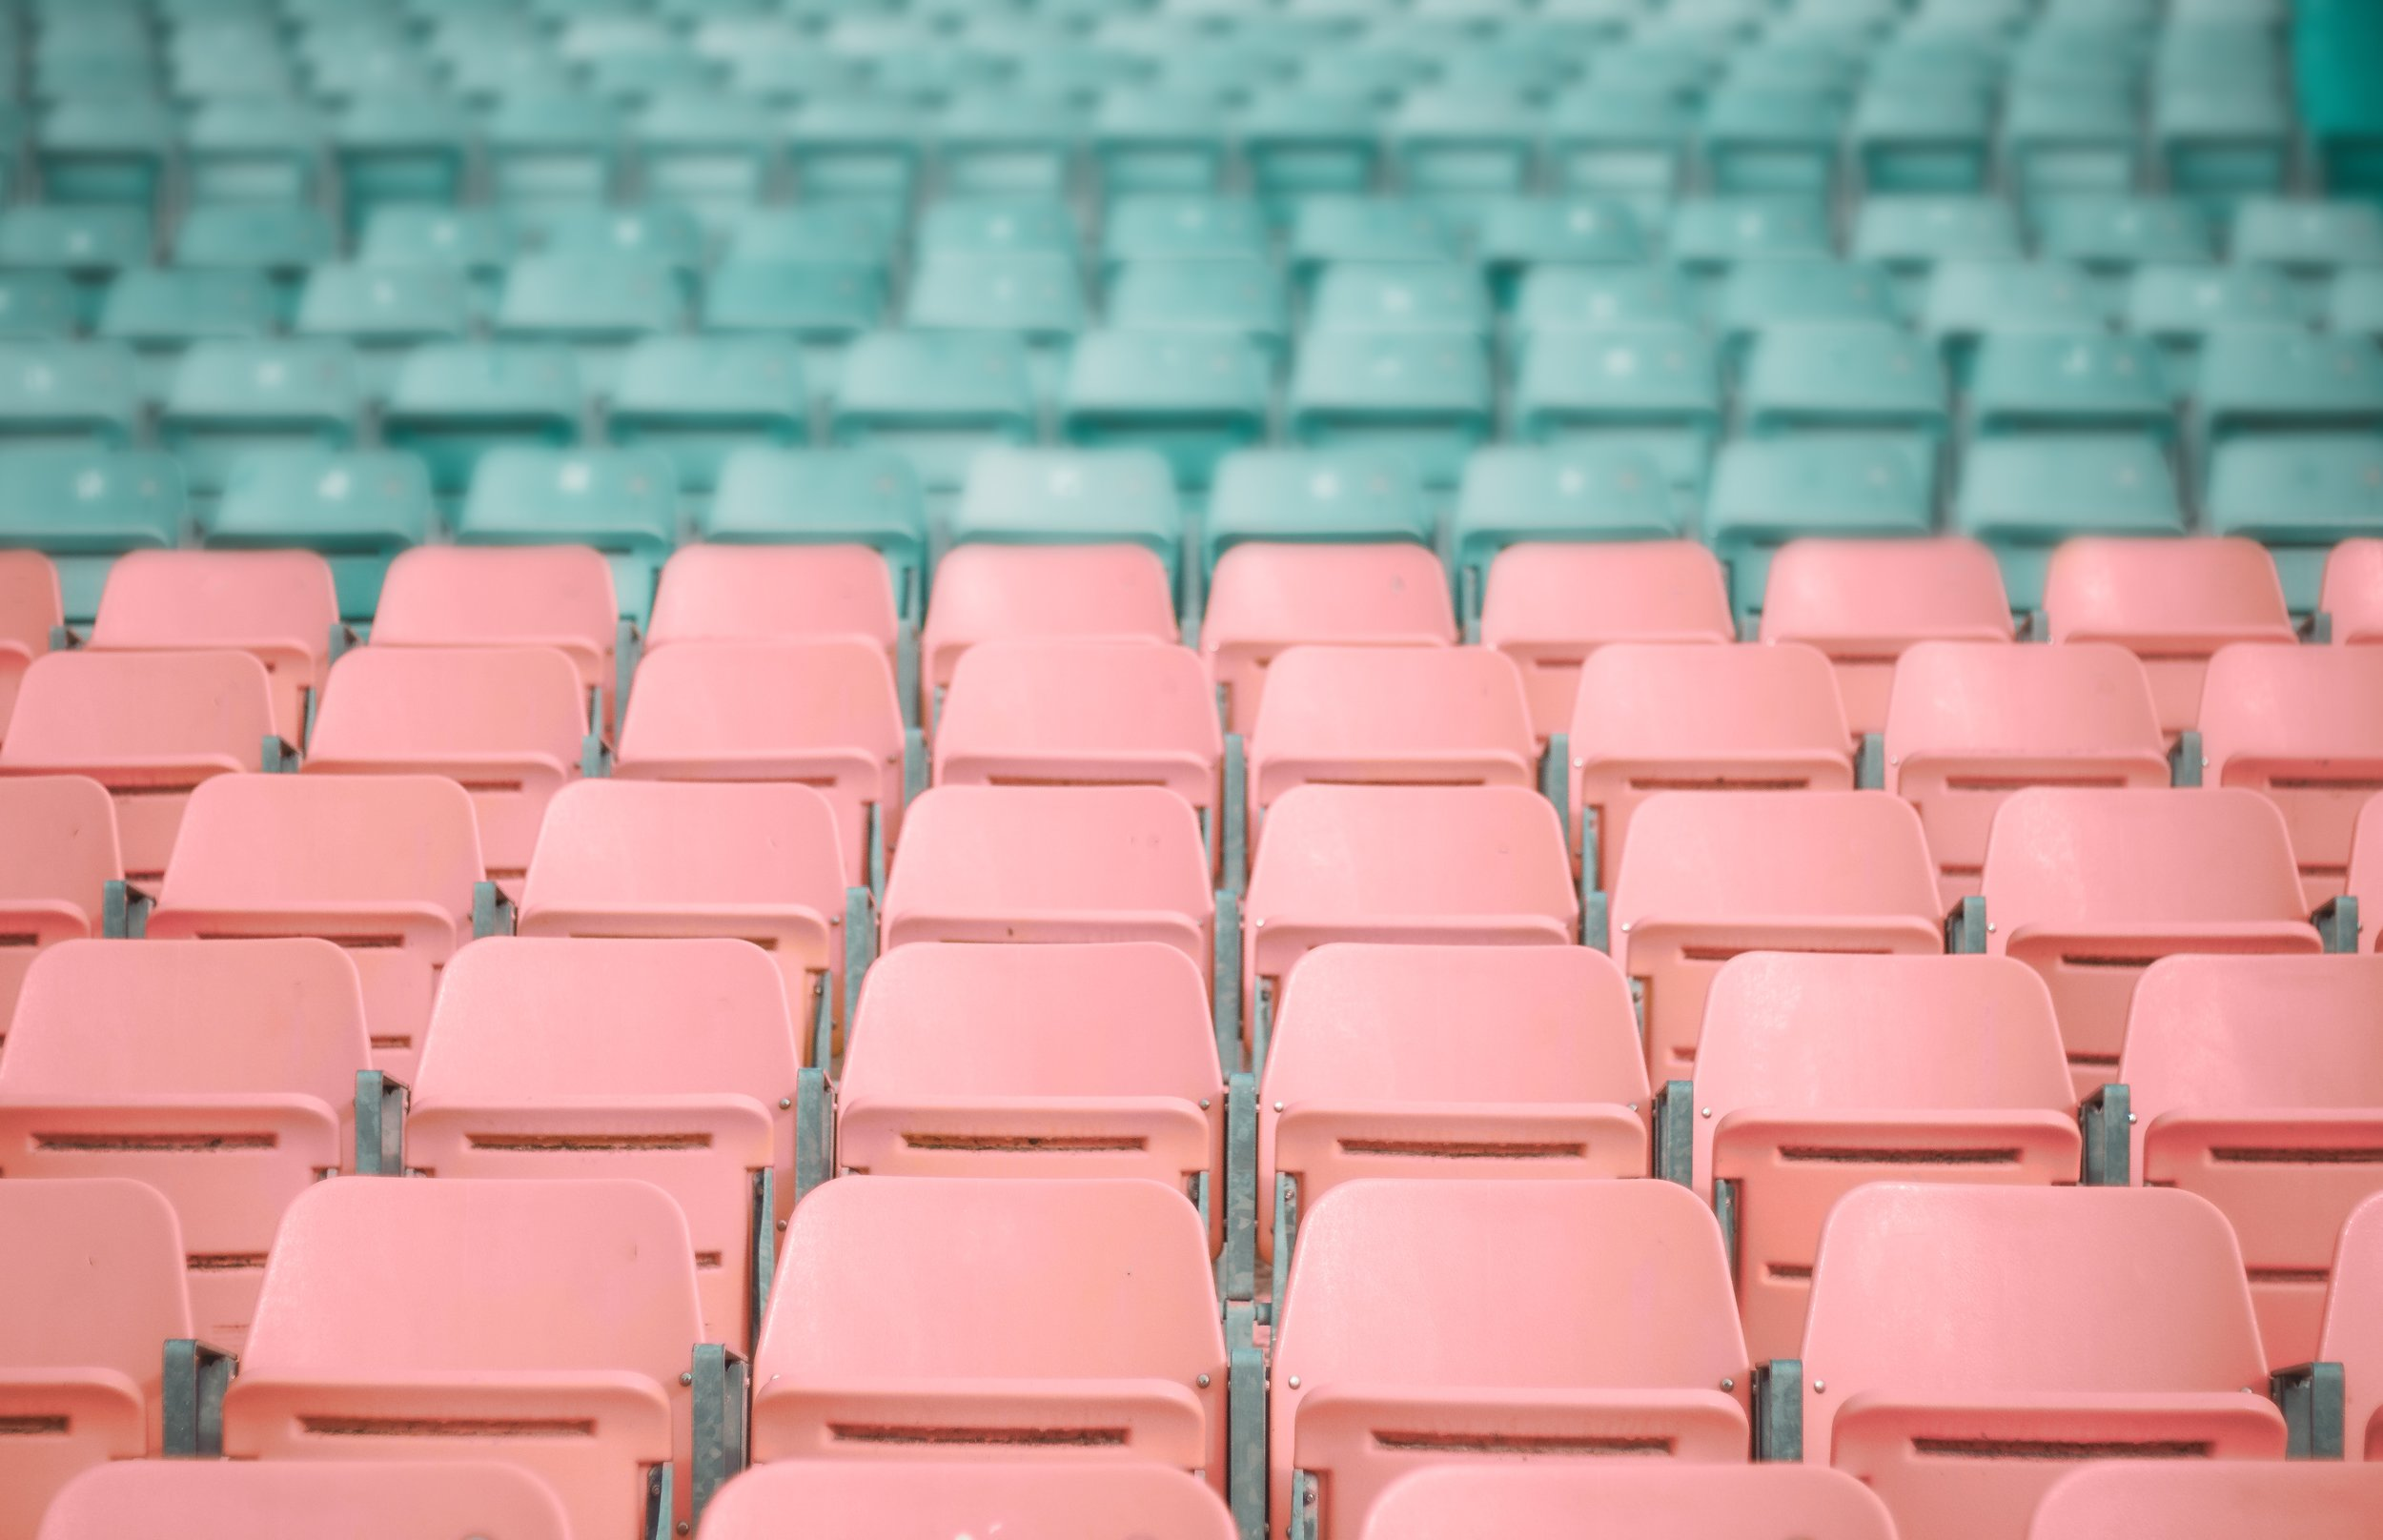 bleachers-blue-blur-752036.jpg